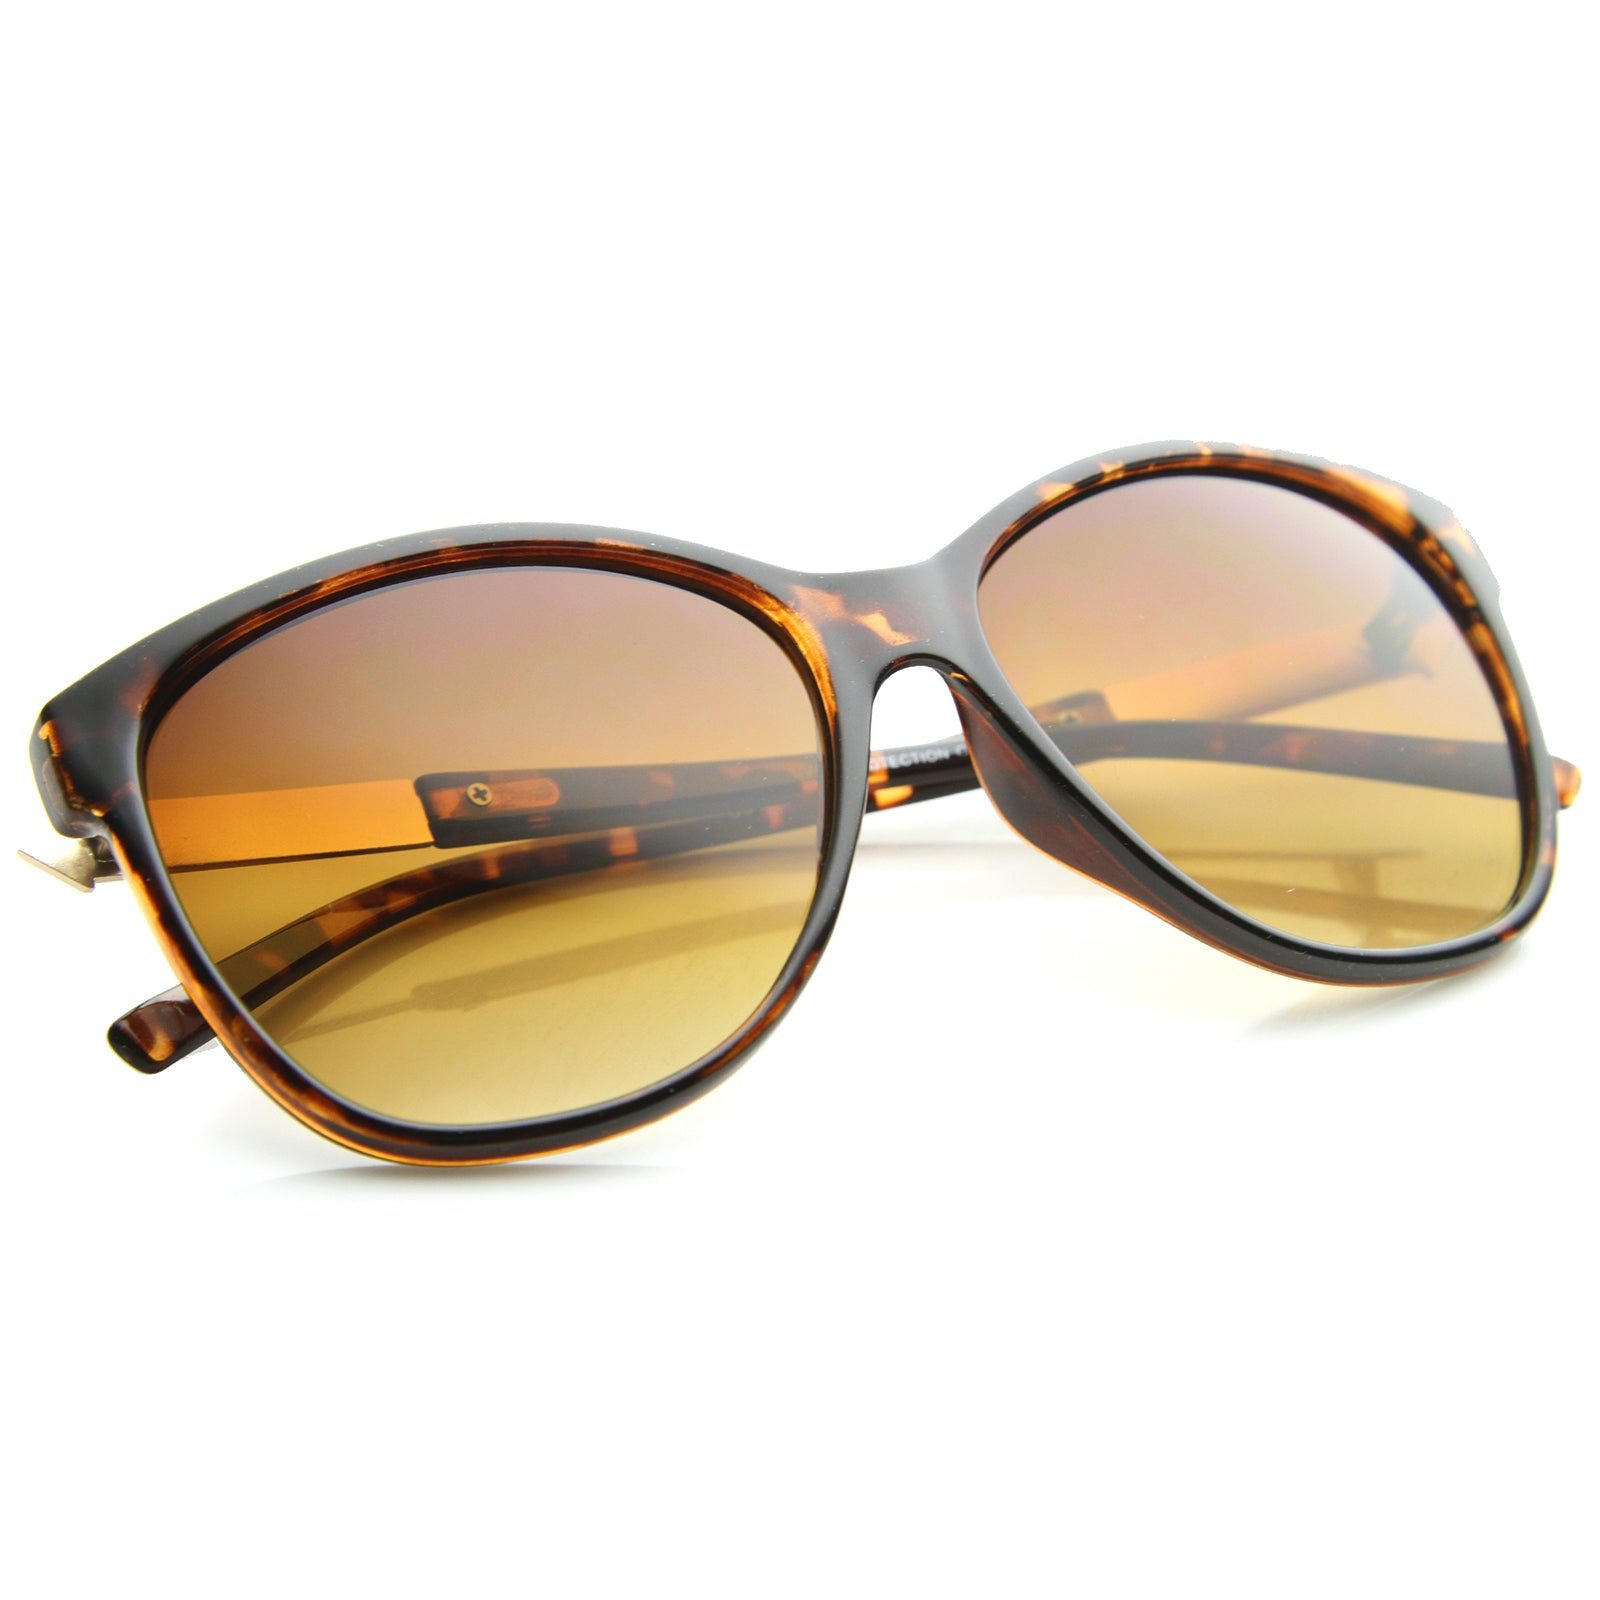 Women's Glam Fashion Metal Temple Oversize Cat Eye Sunglasses 59mm - sunglass.la - 12